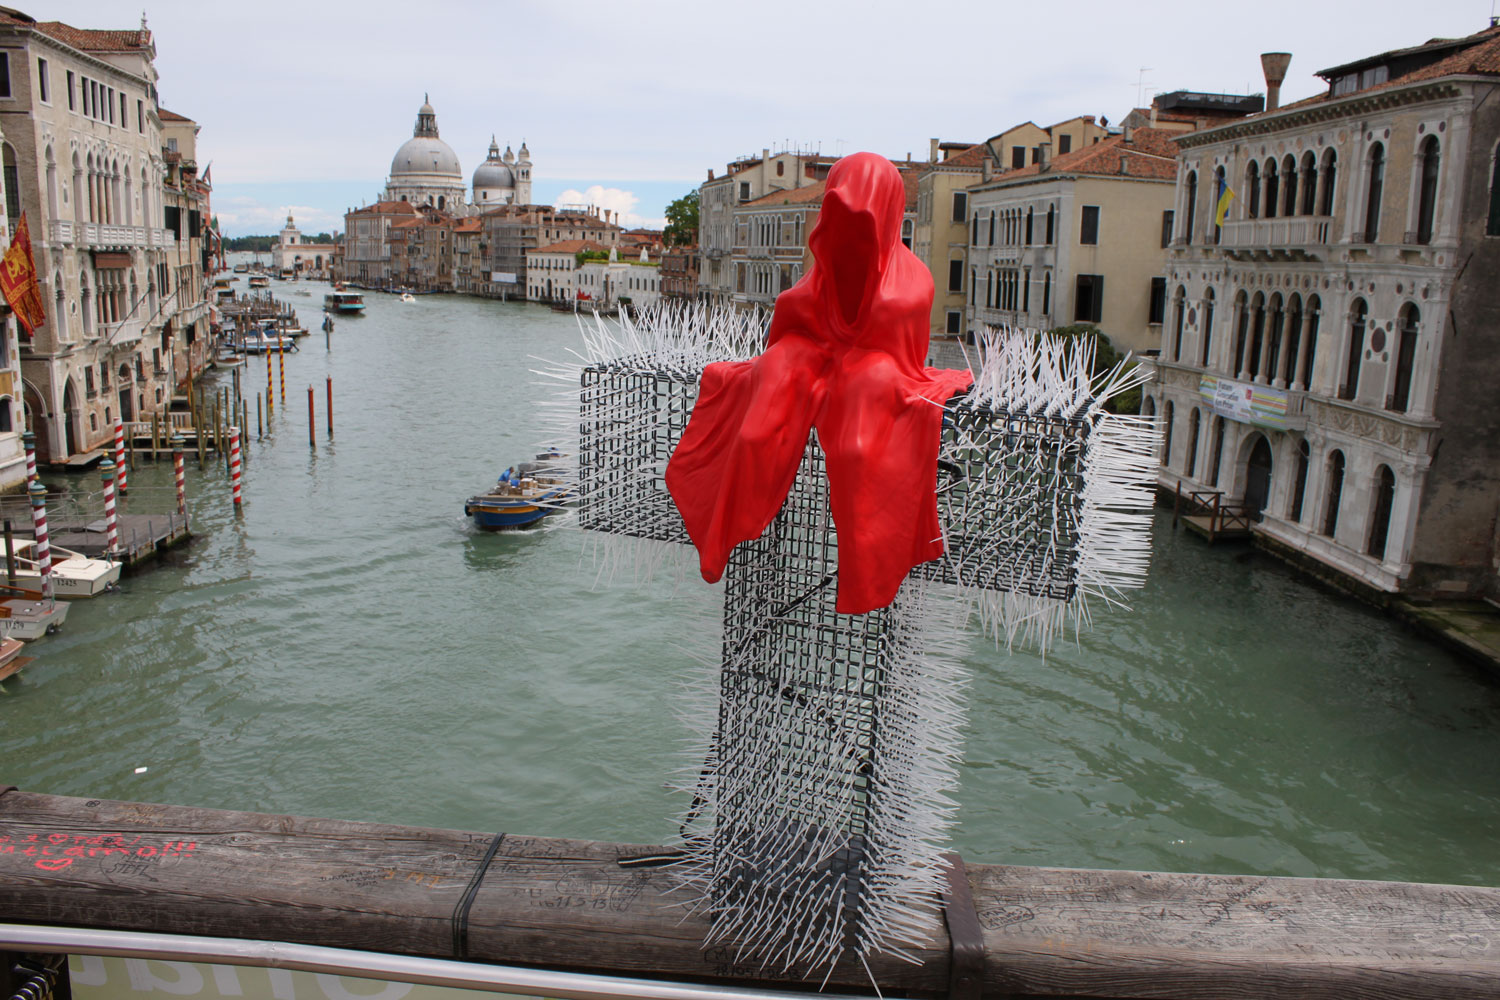 public-show-art-biennial-venice-italy-christoph-luckeneder-manfred-kielnhofer-t-guardian-sculpture-art-arts-arte-2992